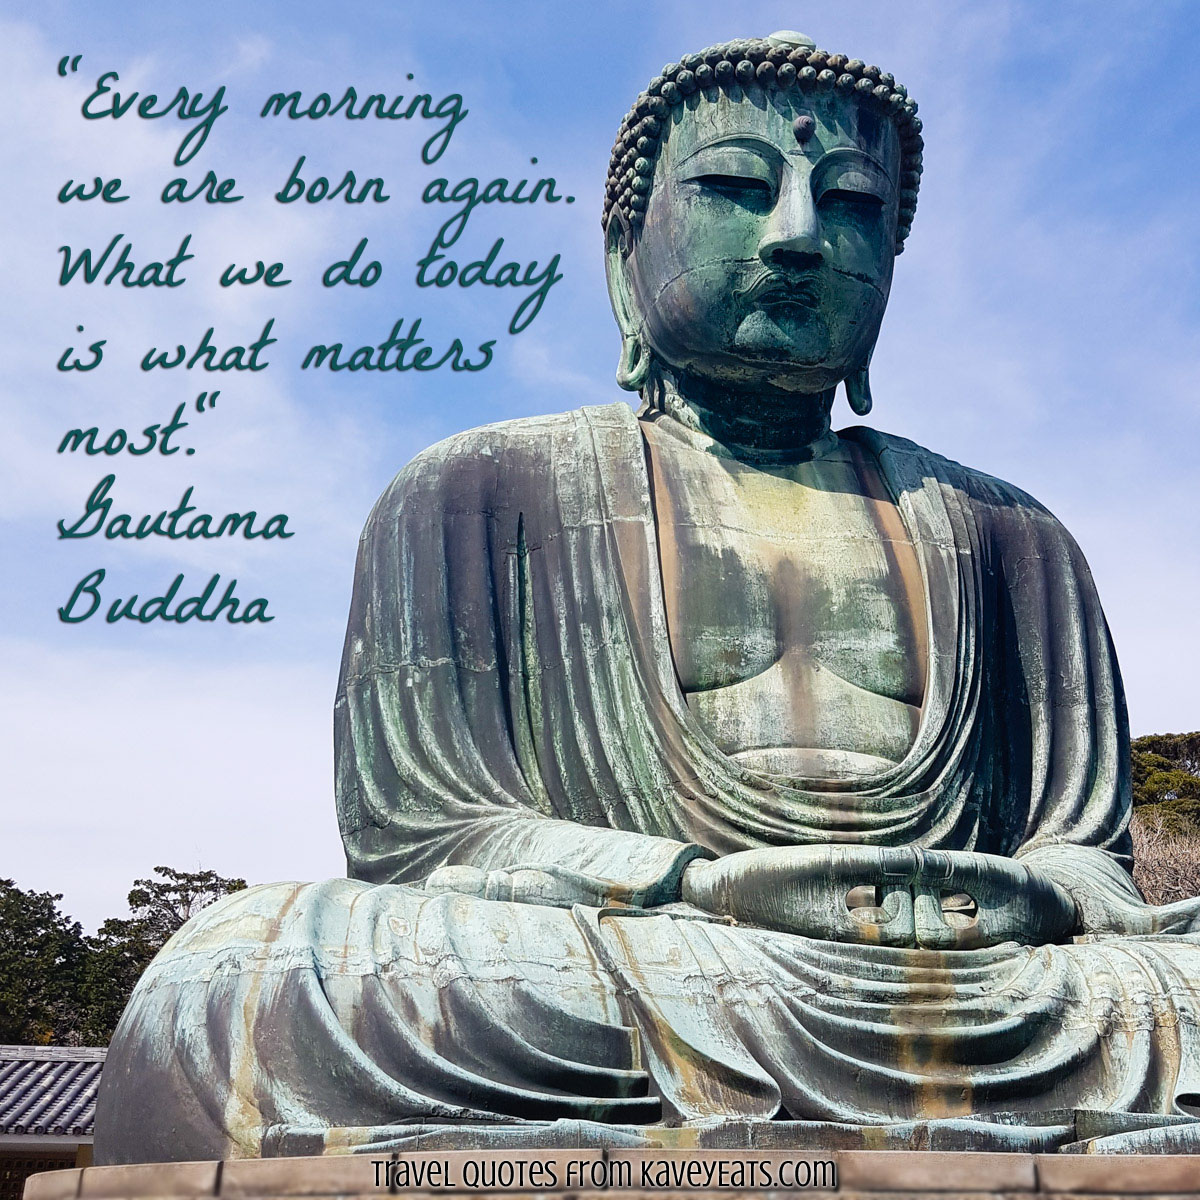 """Every morning we are born again. What we do today is what matters most."" Gautama Buddha"